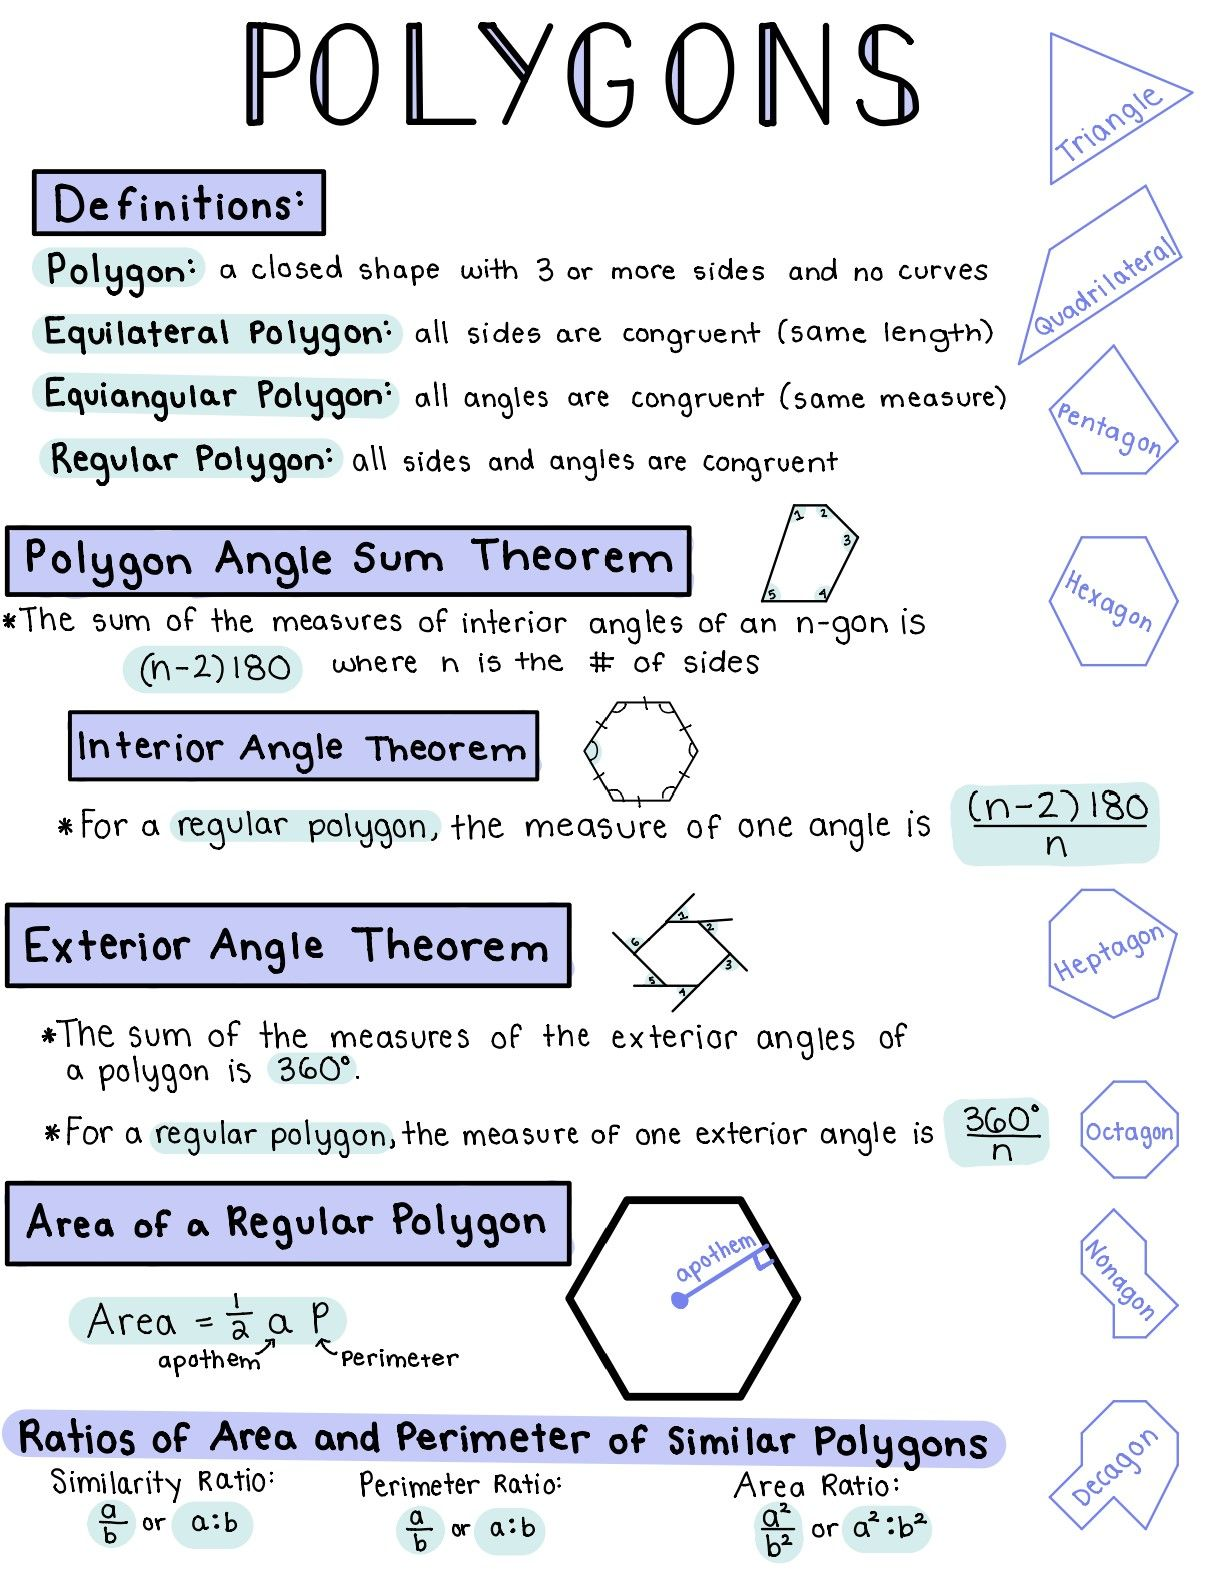 Polygons Reference Sheet Interior Exterior Angle Sum